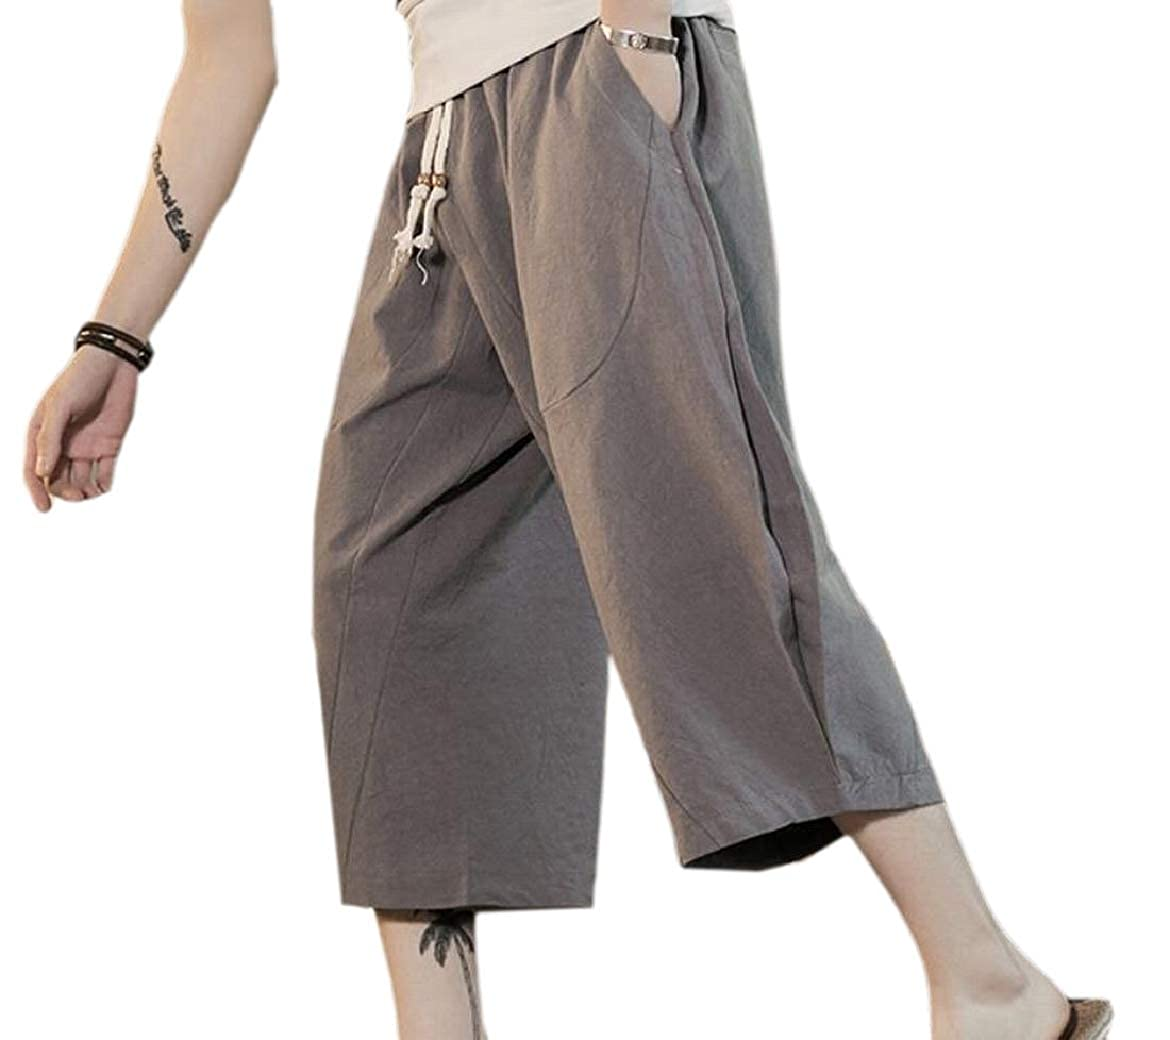 1570202a5fec HTOOHTOOH Men's Thin Soft Waist Drawstring Linen Cotton Capri Harem ...